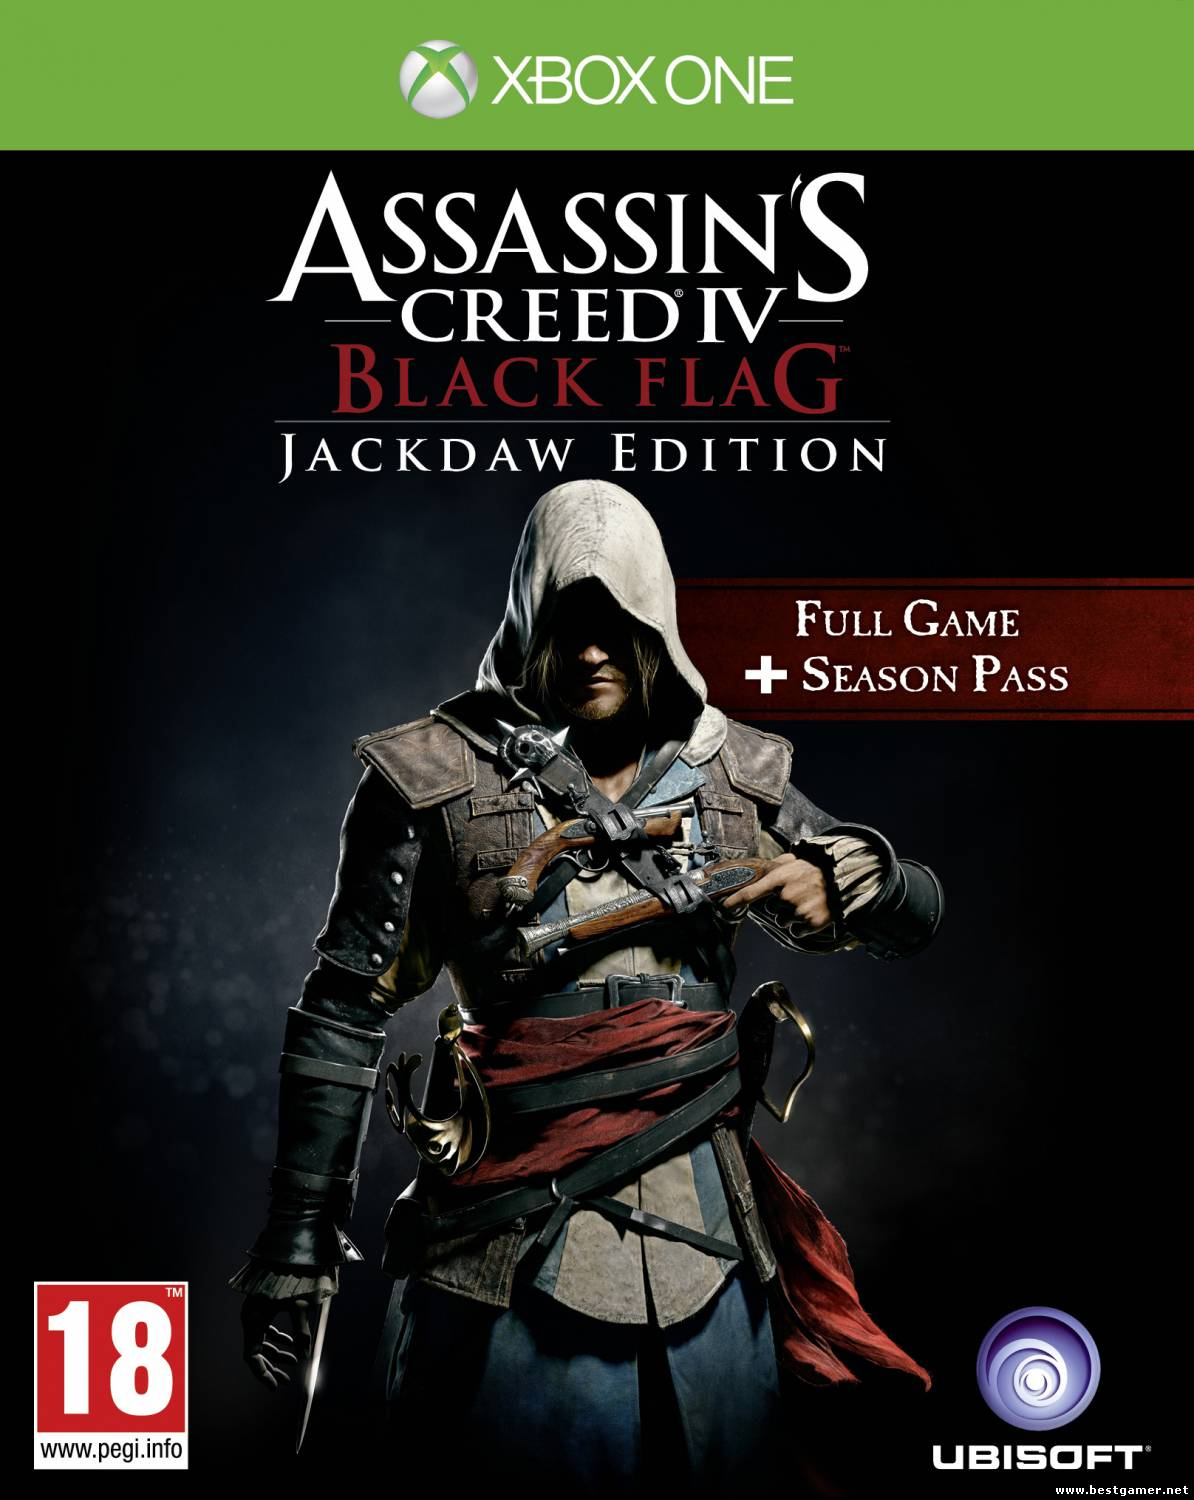 Анонсировано Assassin's Creed IV: Black Flag Jackdaw Edition